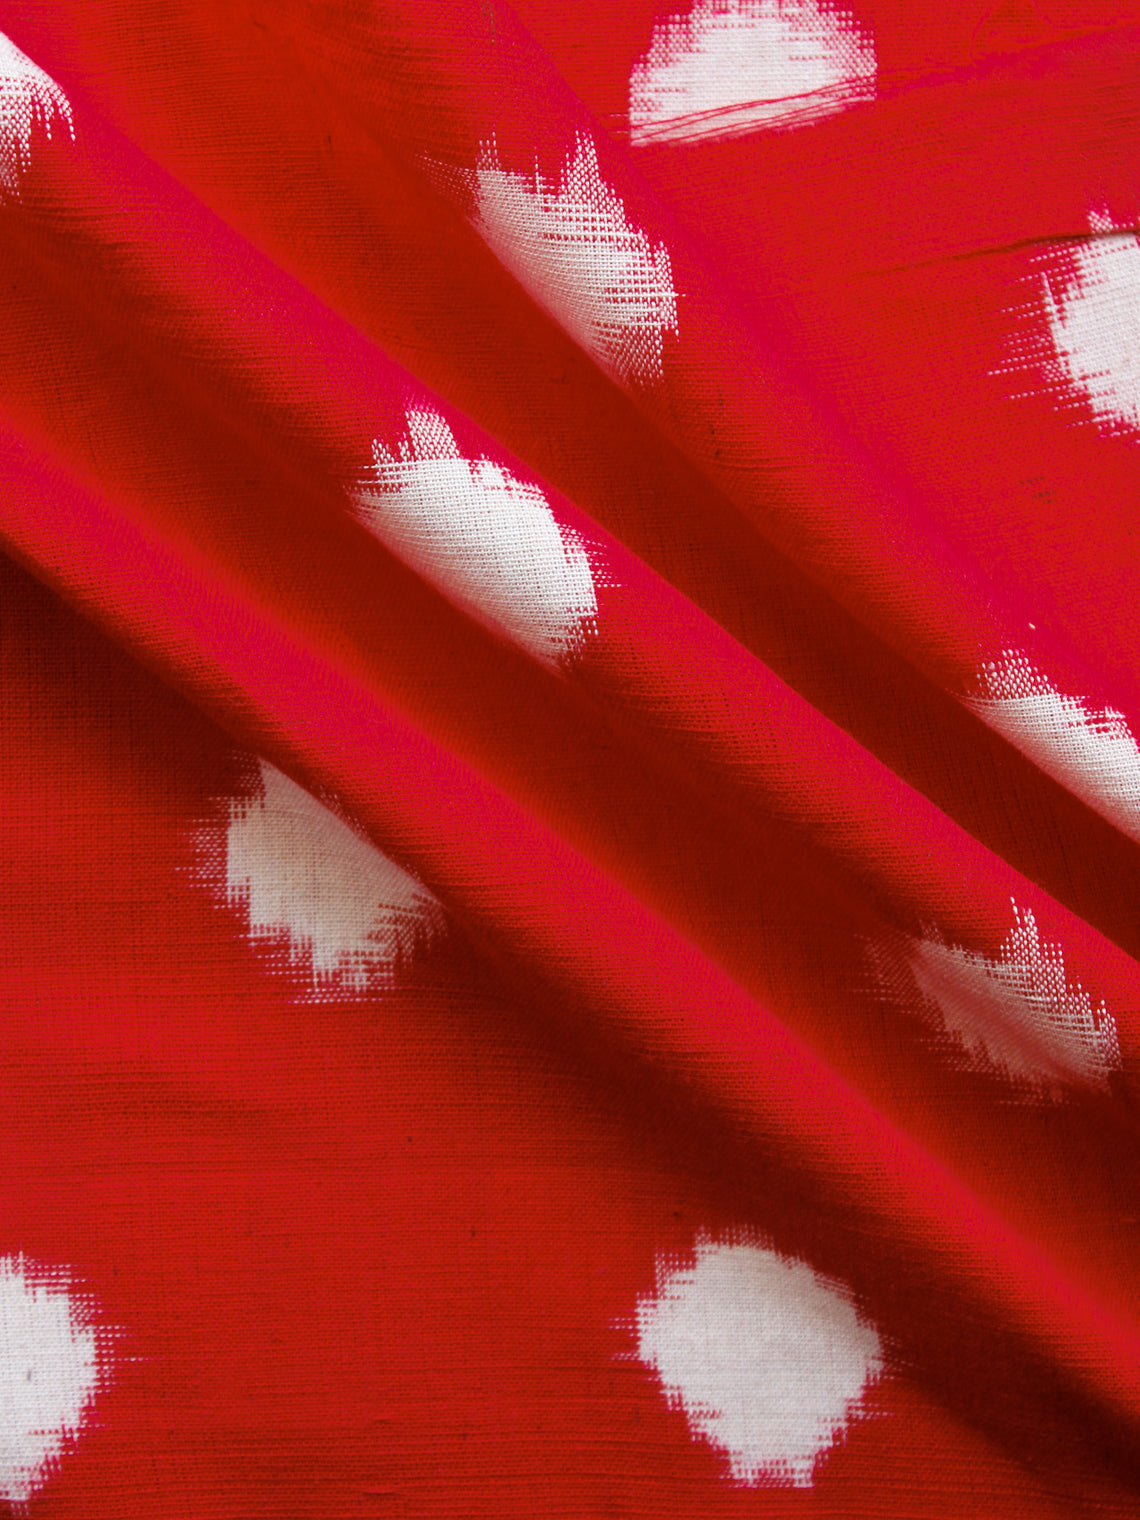 Red White Hand Woven Double Ikat Handloom Cotton Fabric Per Meter - F002F1565